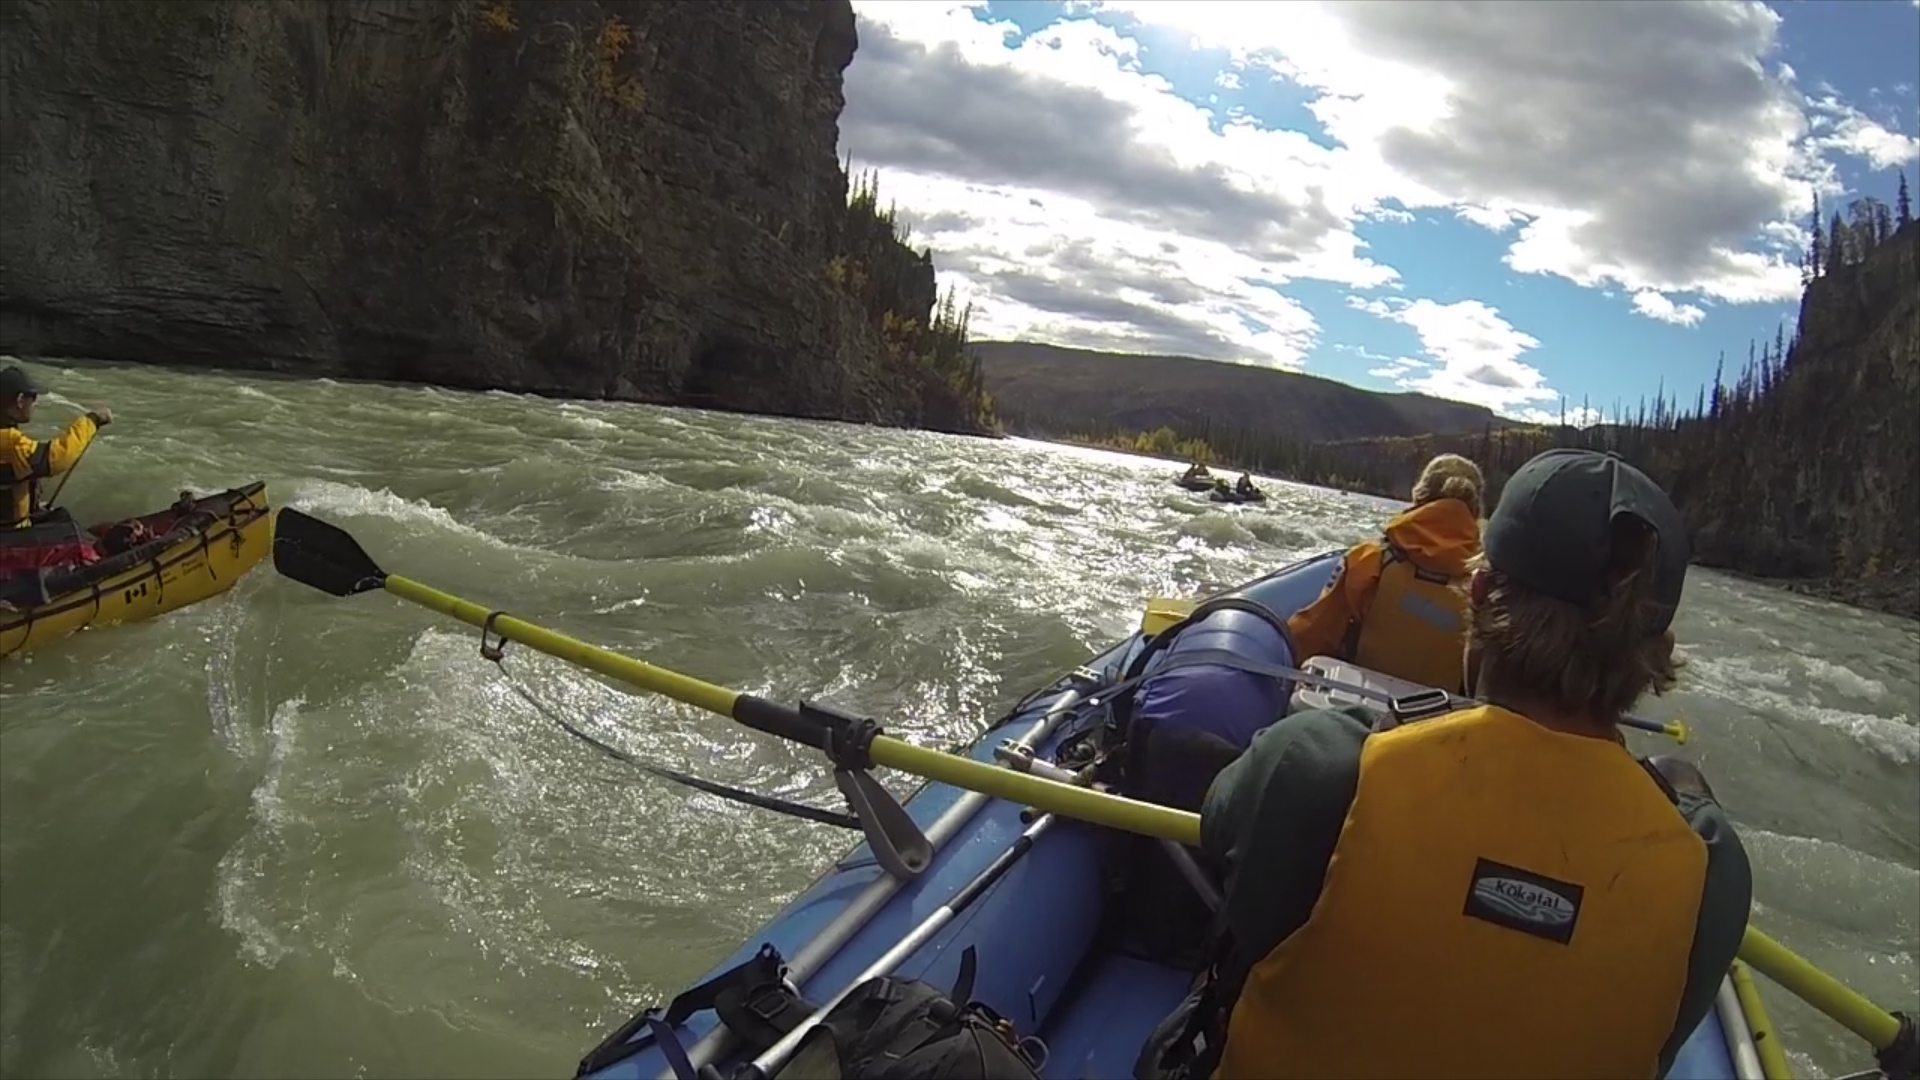 2014 Nahanni River Experience - Find Your Nahanni - River rafting in Nahanni offers both challenges and escapes. Which would you prefer?